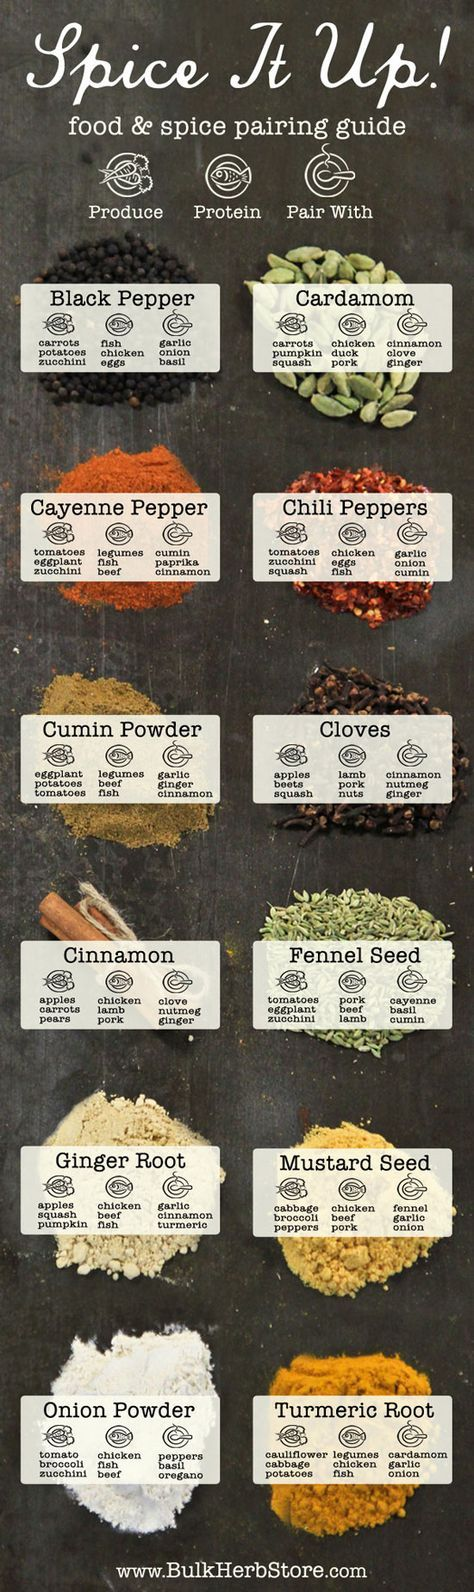 The right use of herbs/spices makes all the difference between cooking for the sake of feeding, and cooking for the sake of